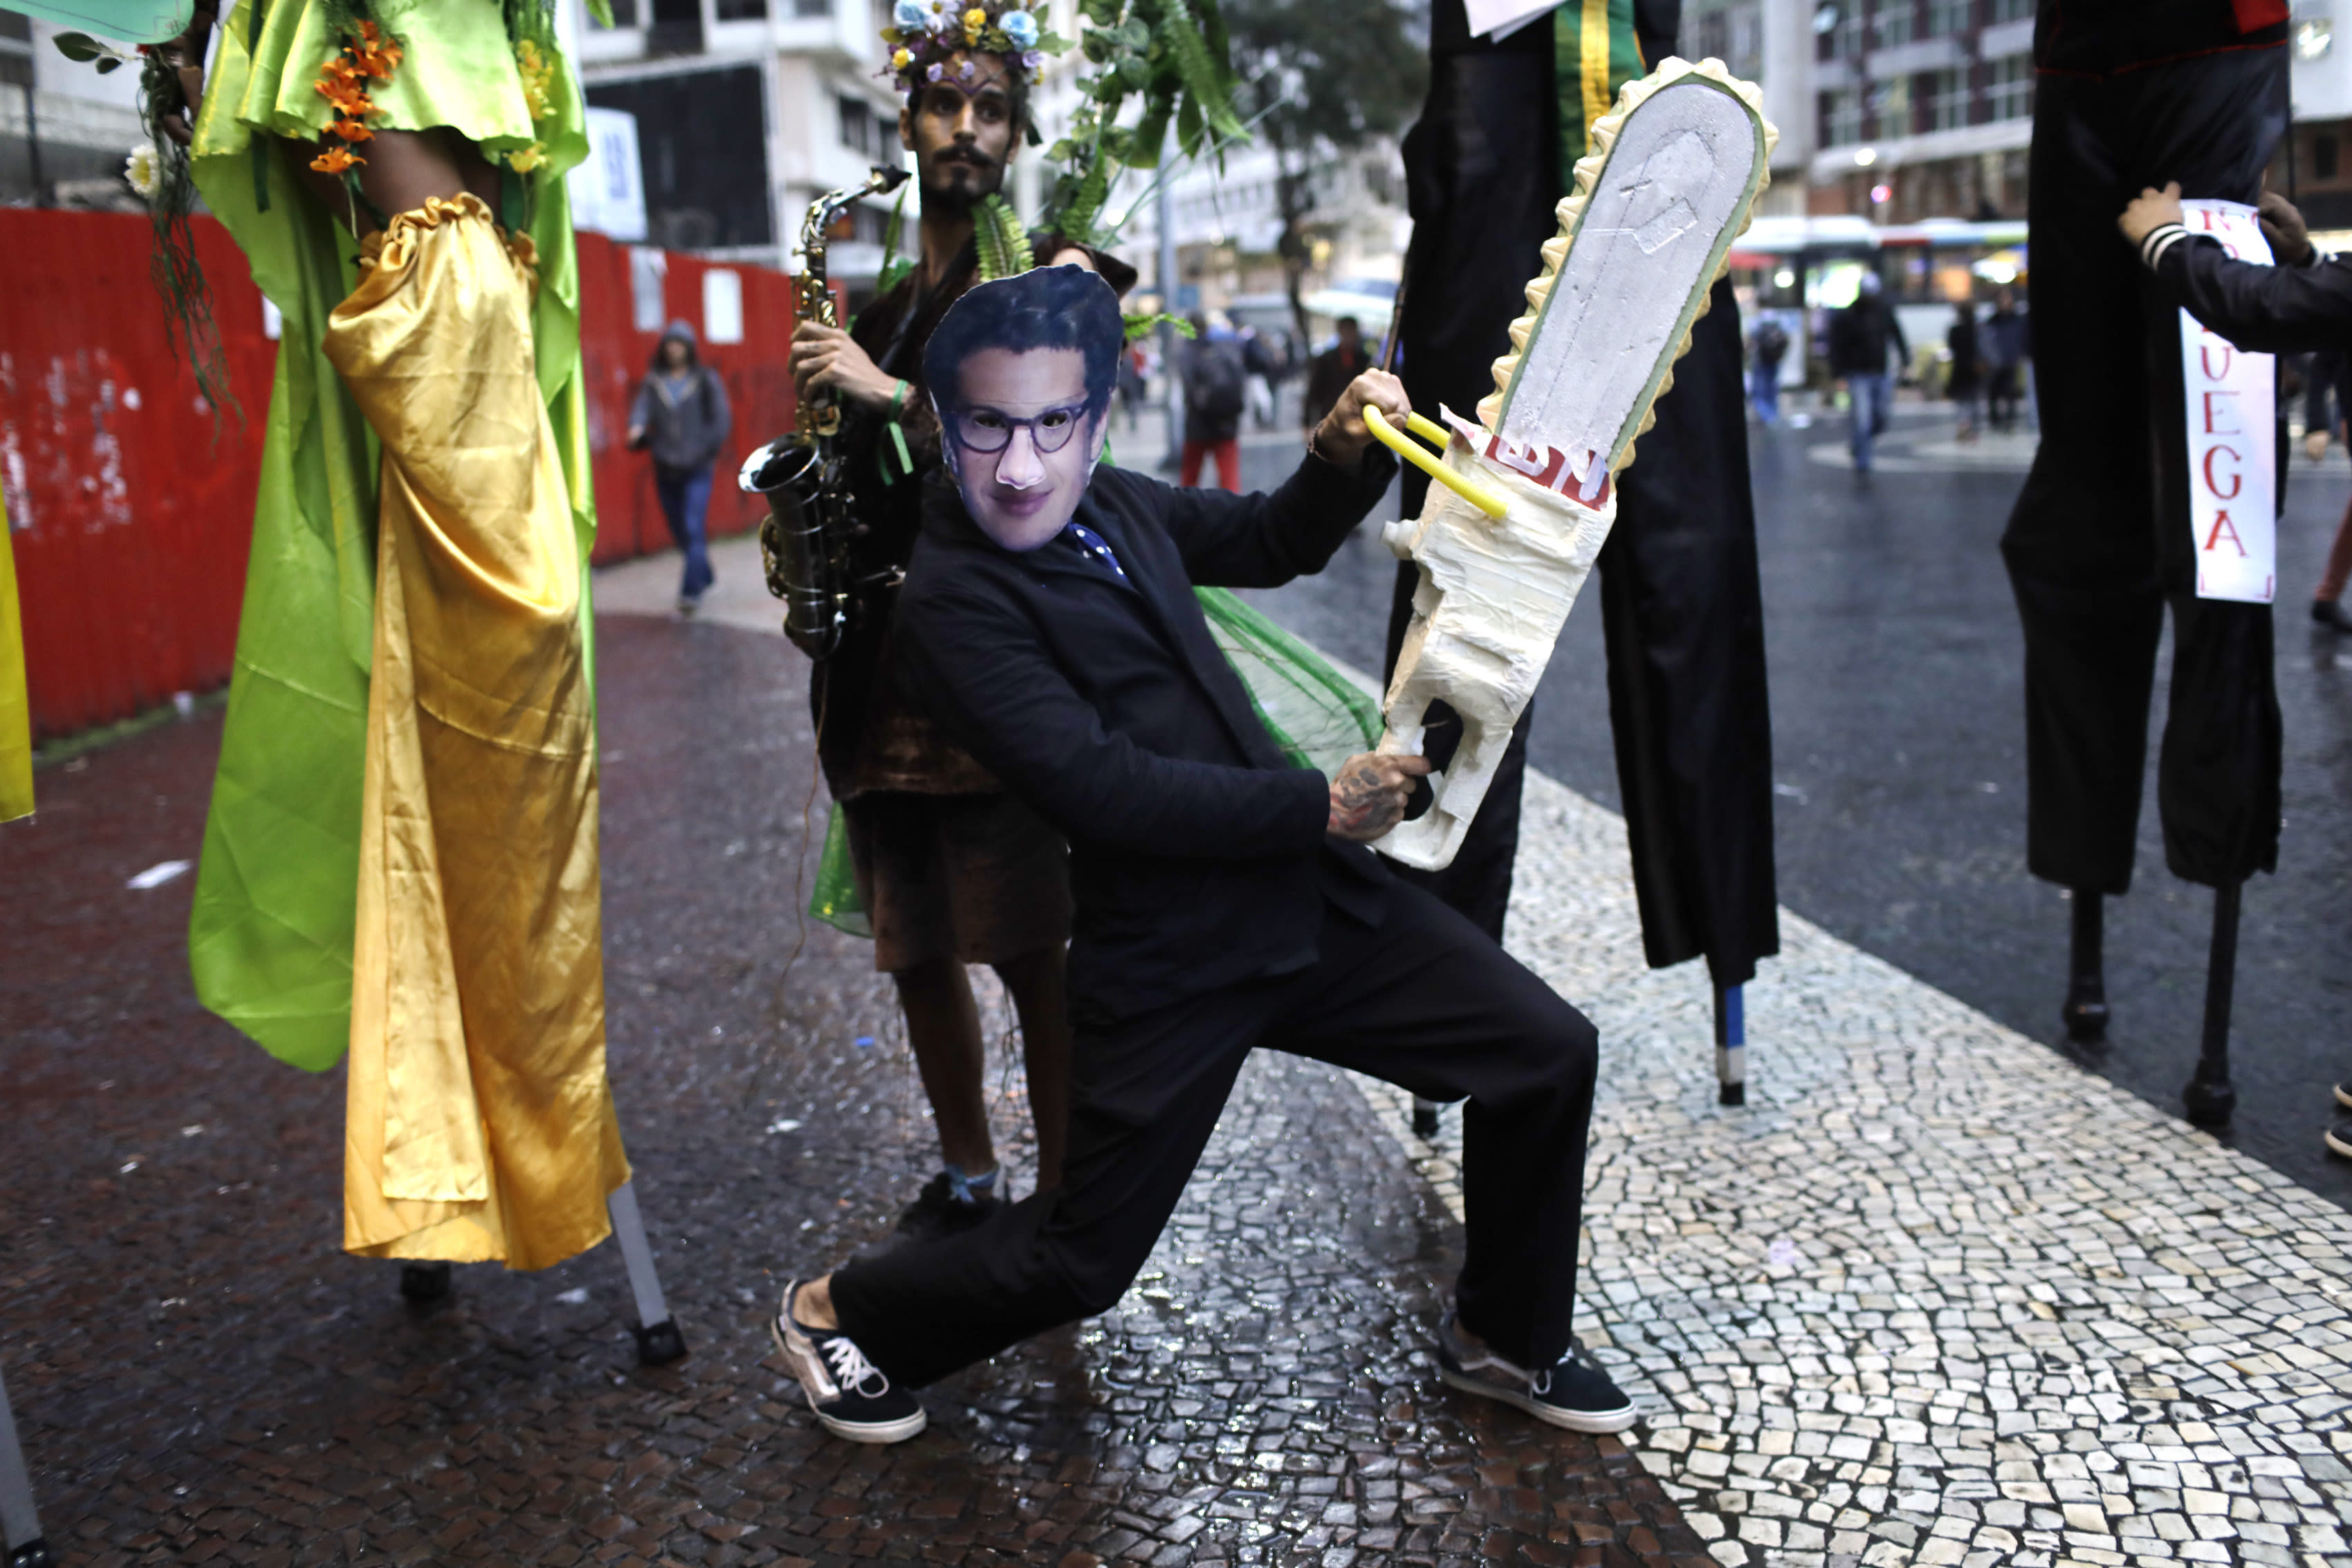 A demonstrator wearing a mask with the likeness of Brazil's Environment Minister Ricardo Salles brandishing a fake chainsaw, participates in a protest to defend of the Amazon, in Rio de Janeiro, Brazil, Thursday, Sept. 5, 2019. The Brazilian Amazon saw almost 31 thousand fires in August, the highest for the month since 2010, according to Brazil's National Institute for Space Research. (AP Photo/Silvia Izquierdo)